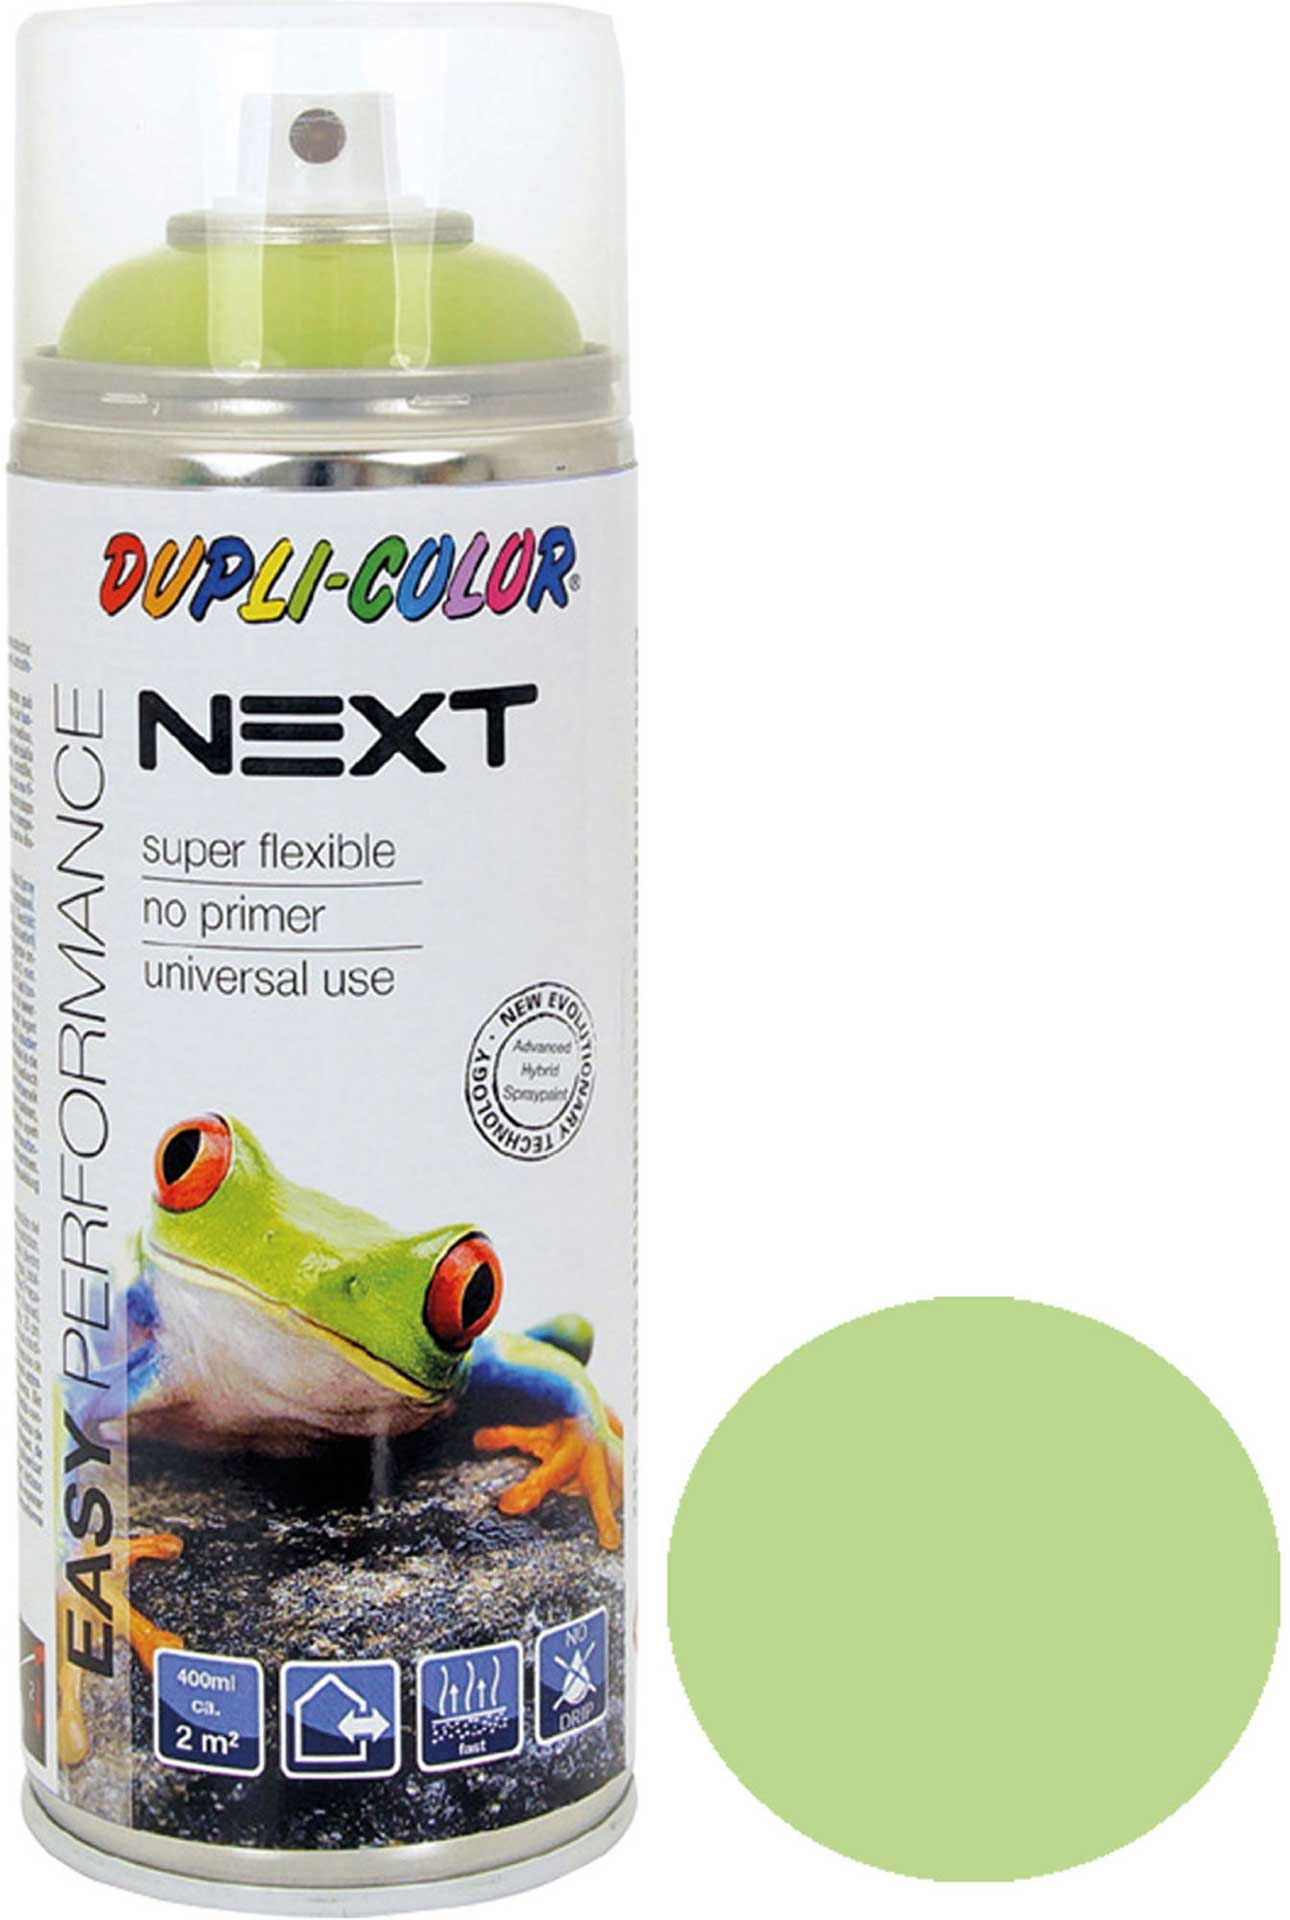 DUPLI-COLOR NEXT LONDON GREEN SDM. 400ML SPRAY PAINT